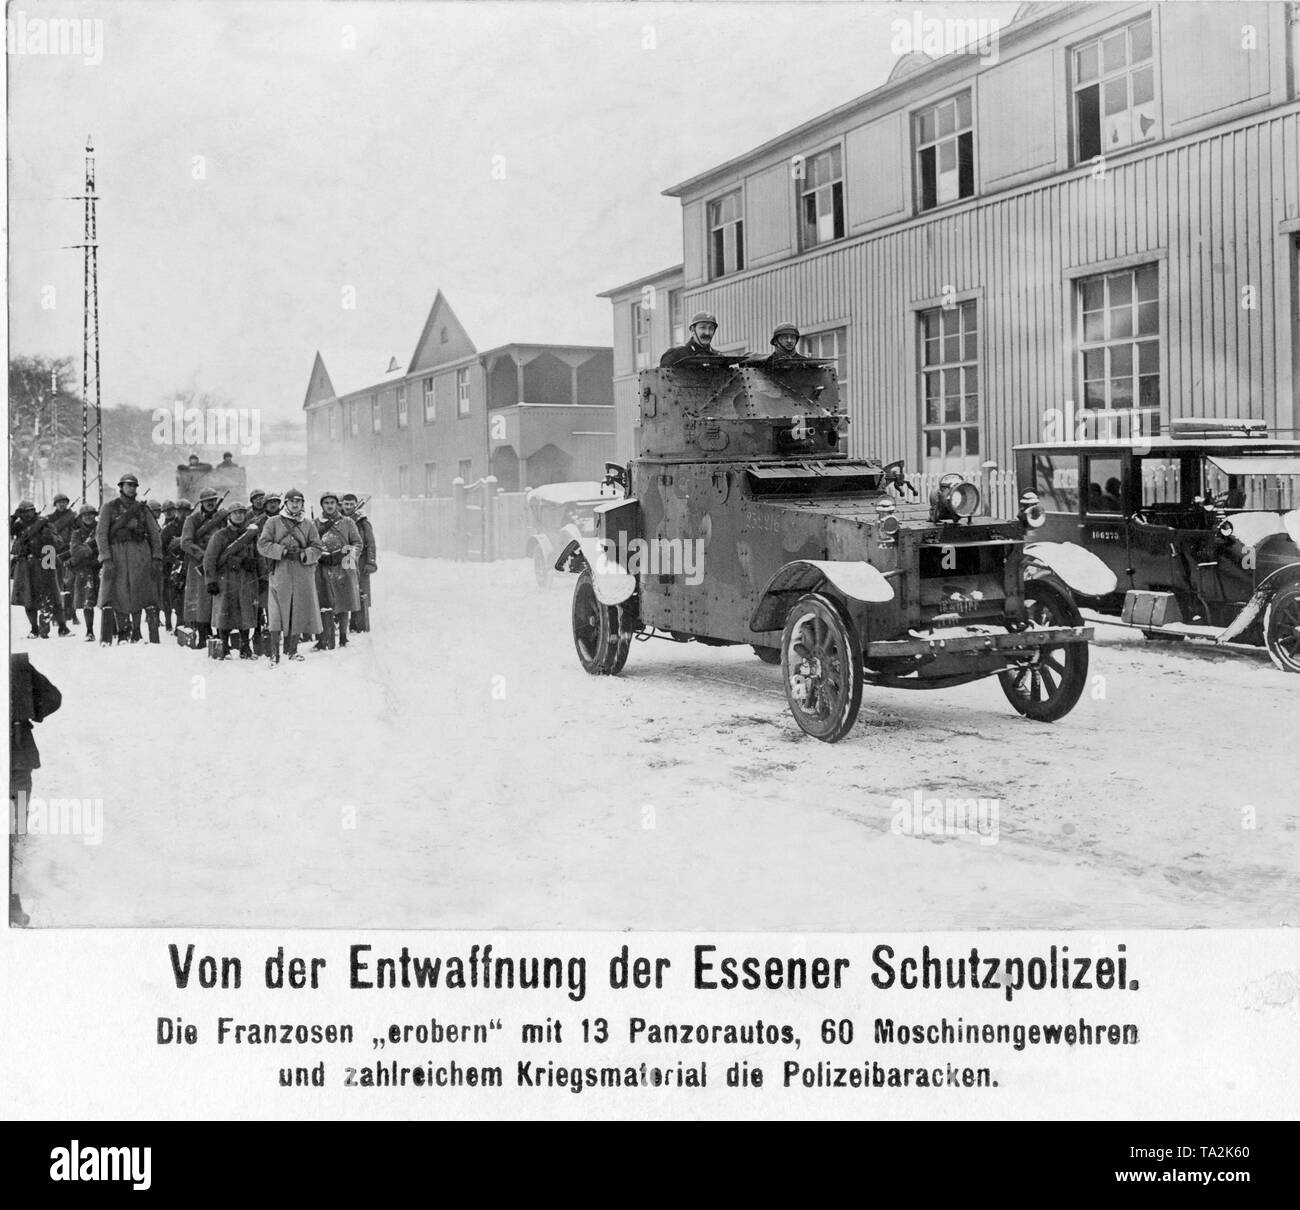 When the French invaded the Ruhr, the local police were also disarmed. Here an armored car of the occupation army rides in front of the barracks of the Essen police, in order to supervise the proper disarmament of the German policemen. - Stock Image